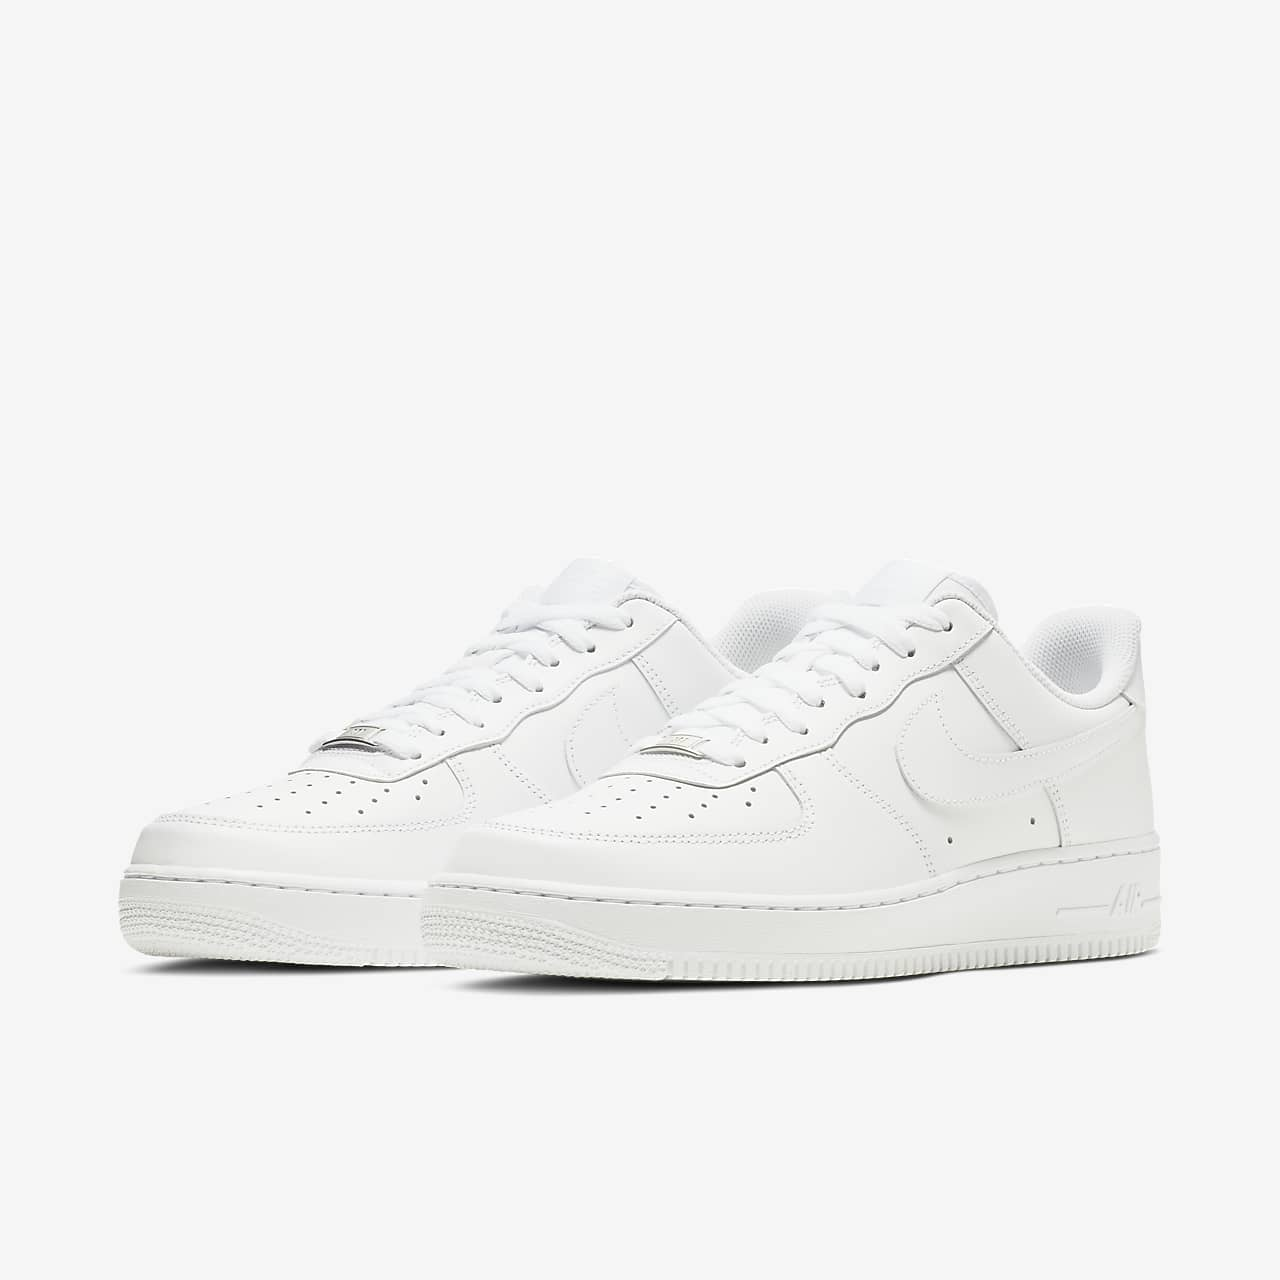 Mayo pacífico Implementar  Nike Air Force 1 '07 Men's Shoe. Nike.com